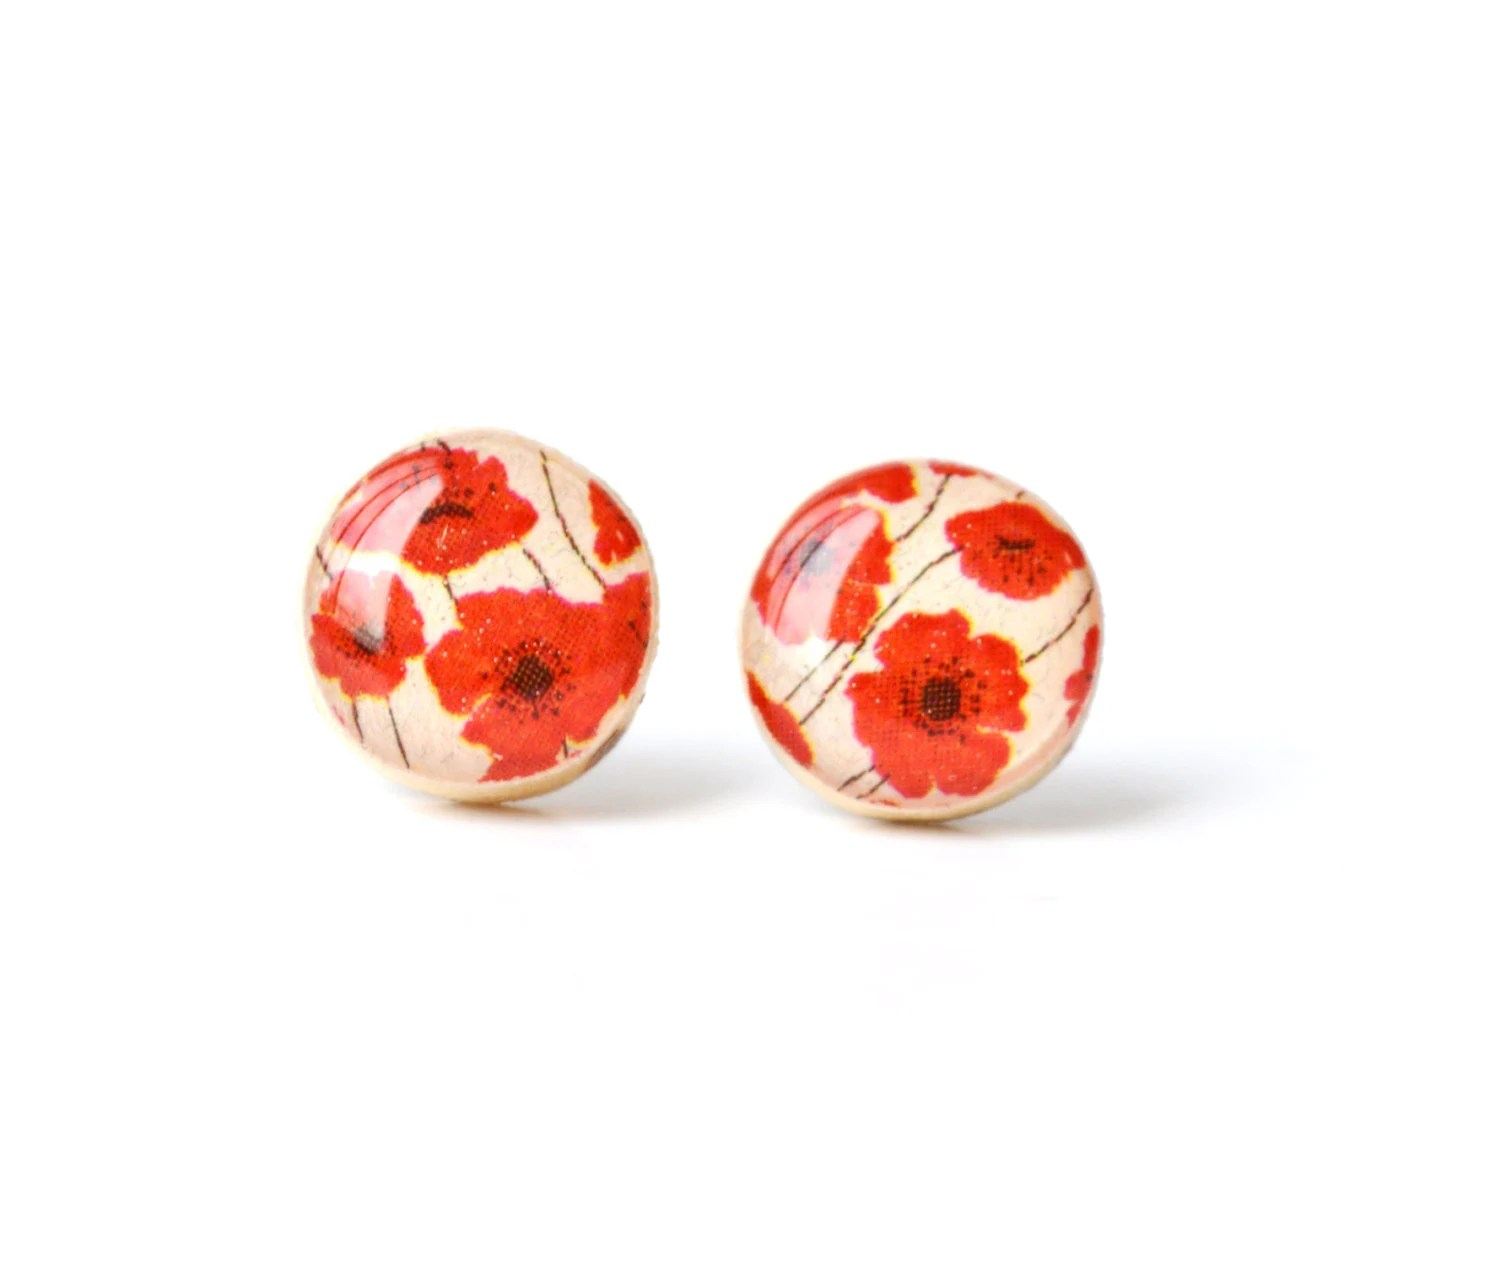 Red poppy studs post earrings wood earrings spring jewelry eco fashion eco friendly unique gift for her - starlightwoods